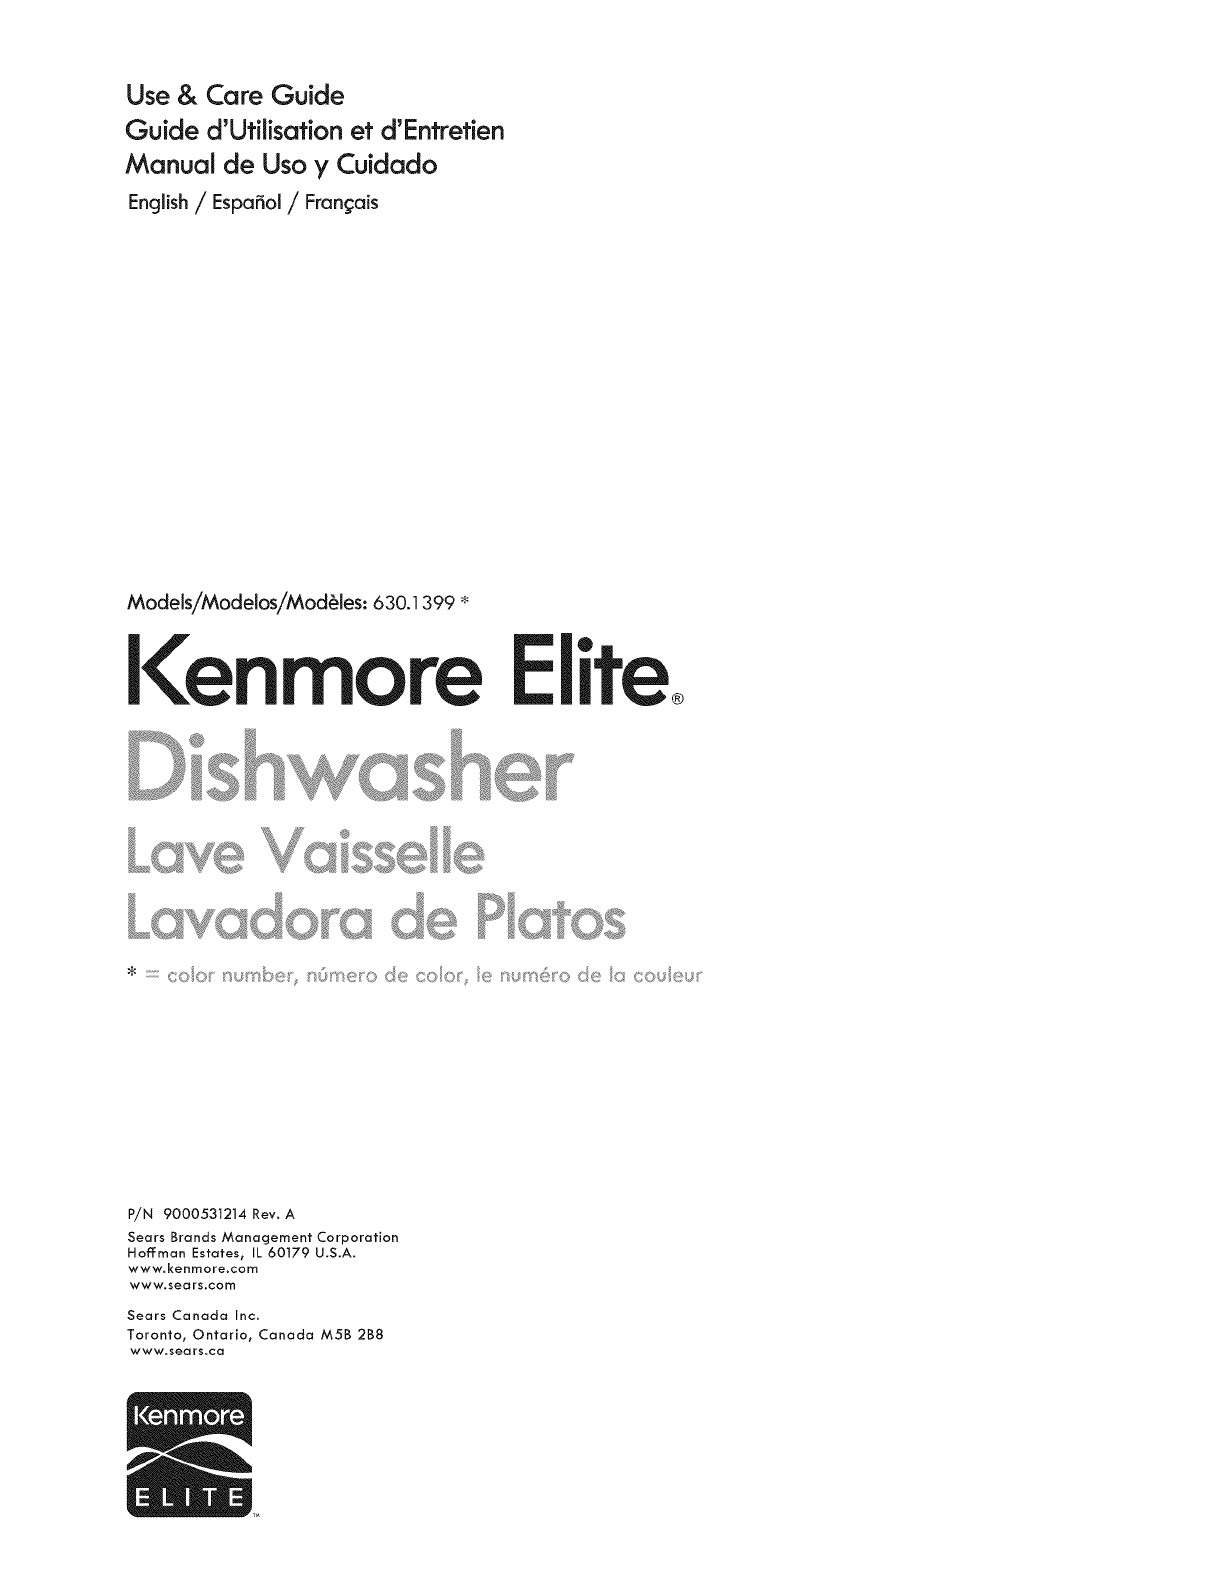 Kenmore Elite Dishwasher Schematic - Diagrams Catalogue on